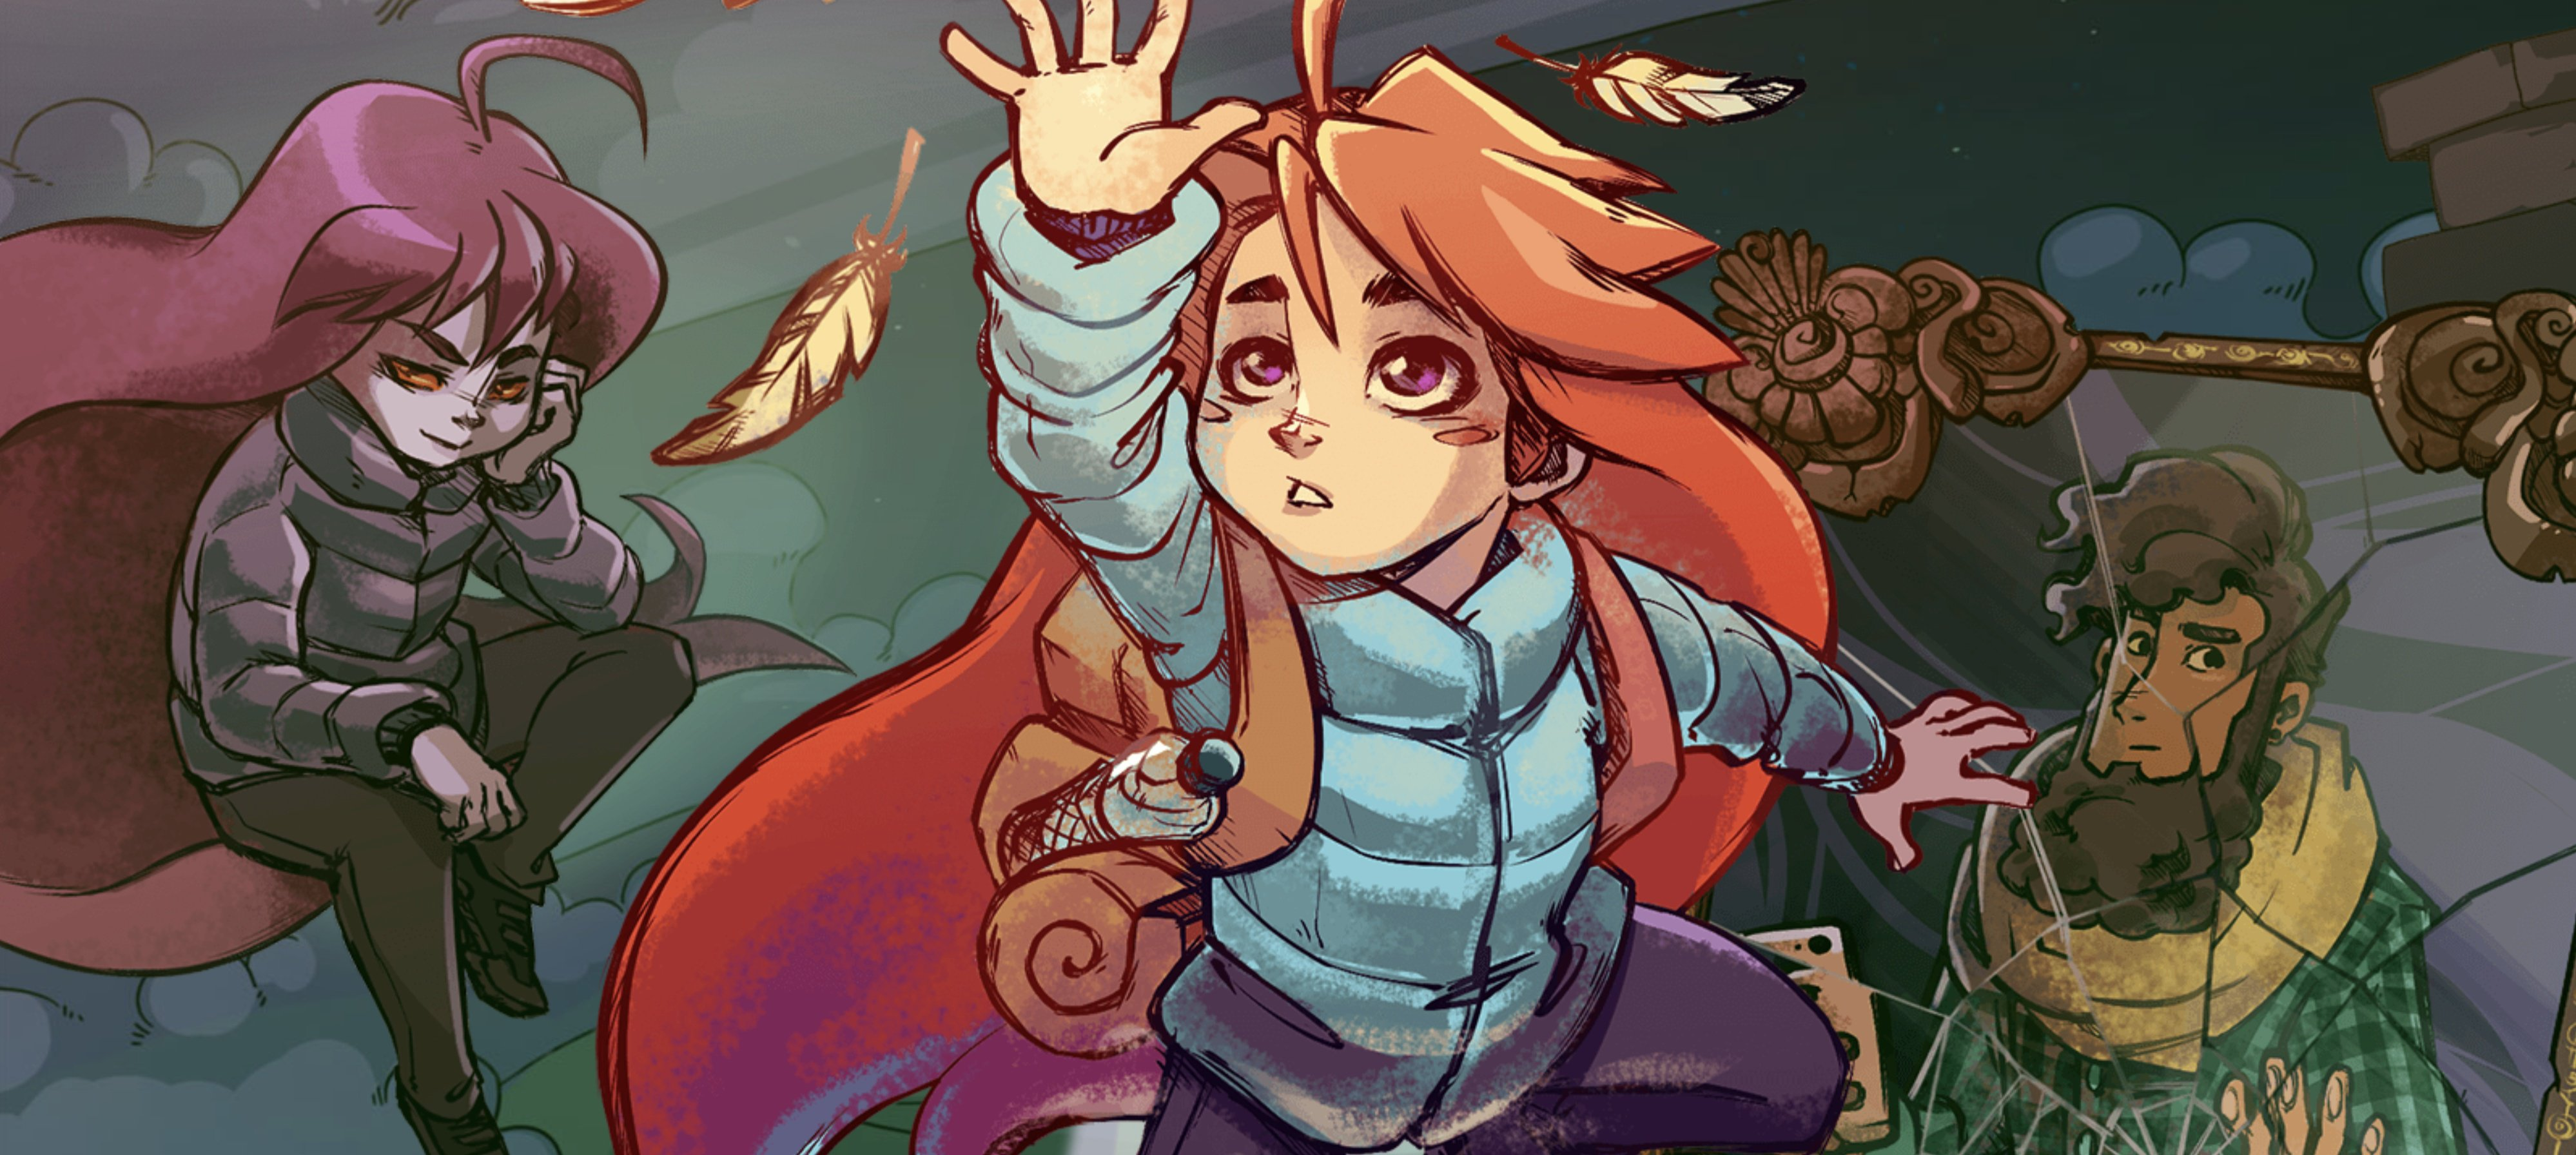 Celeste PC Game Full Version Free Download